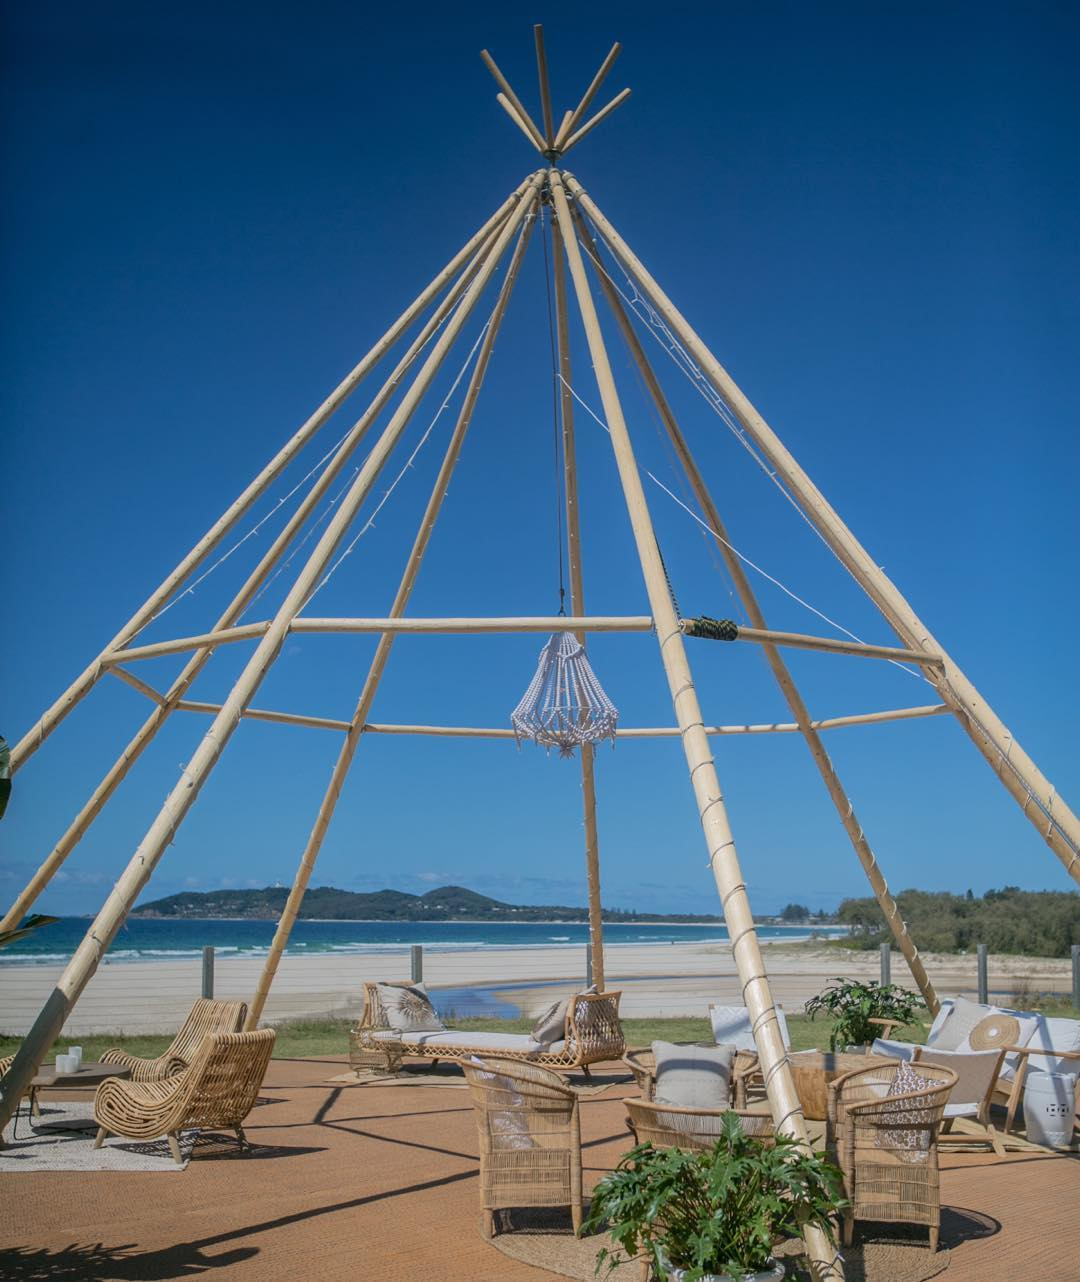 Beautiful and Functional Tents for your Byron Bay Wedding - It's almost unthinkable to travel to Byron Bay and not plan an incredible outdoor wedding - you are surrounded by gorgeous hinterlands and pristine beaches, afterall! This is why you need Byron Bay Tipi Weddings at the top of your vendor list. Choose from among their beautiful and functional canvas tents and start to watch your day take shape. Our favourite is their Naked Tipi tent - perfect for a ceremony centerpiece, dining setup, or for dancing under the stars. Whatever your vision, they are committed to bringing it to life and letting your venue shine.Visit WebsiteByron Bay, AustraliaPhone: 1 300 773779 Email: hello@byronbaytipiweddings.com.au